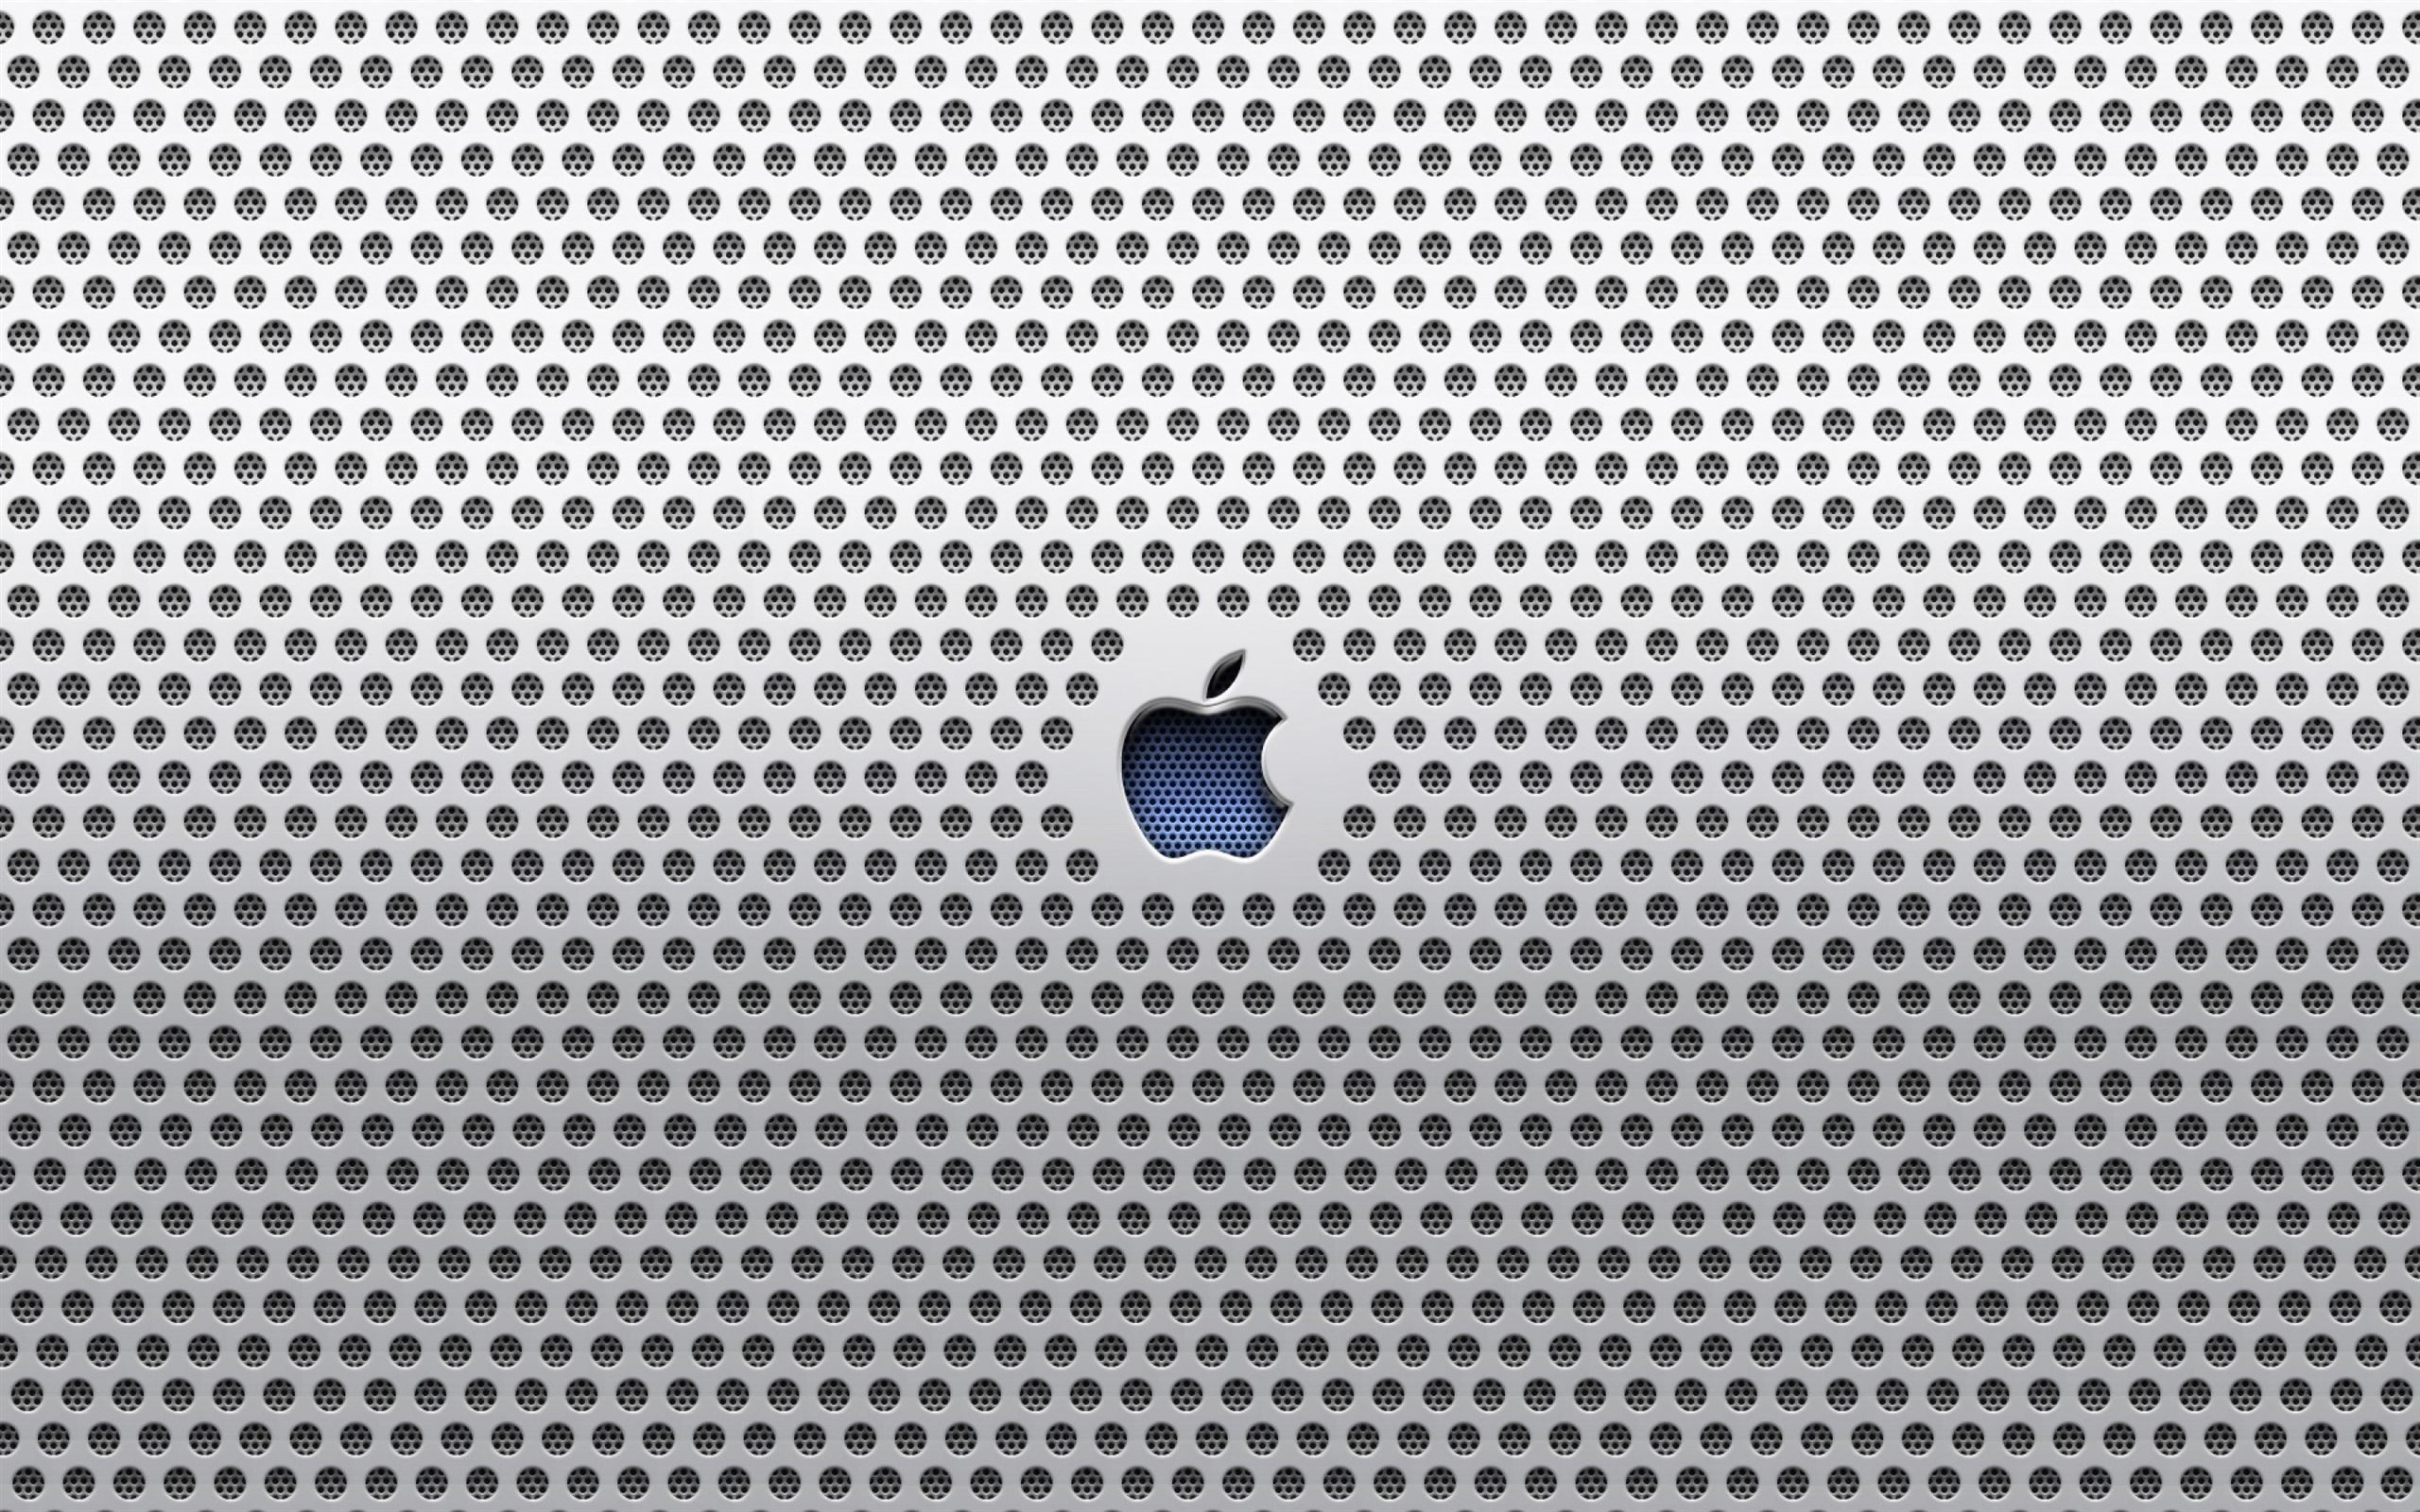 apple metal hd mac wallpaper download | free mac wallpapers download